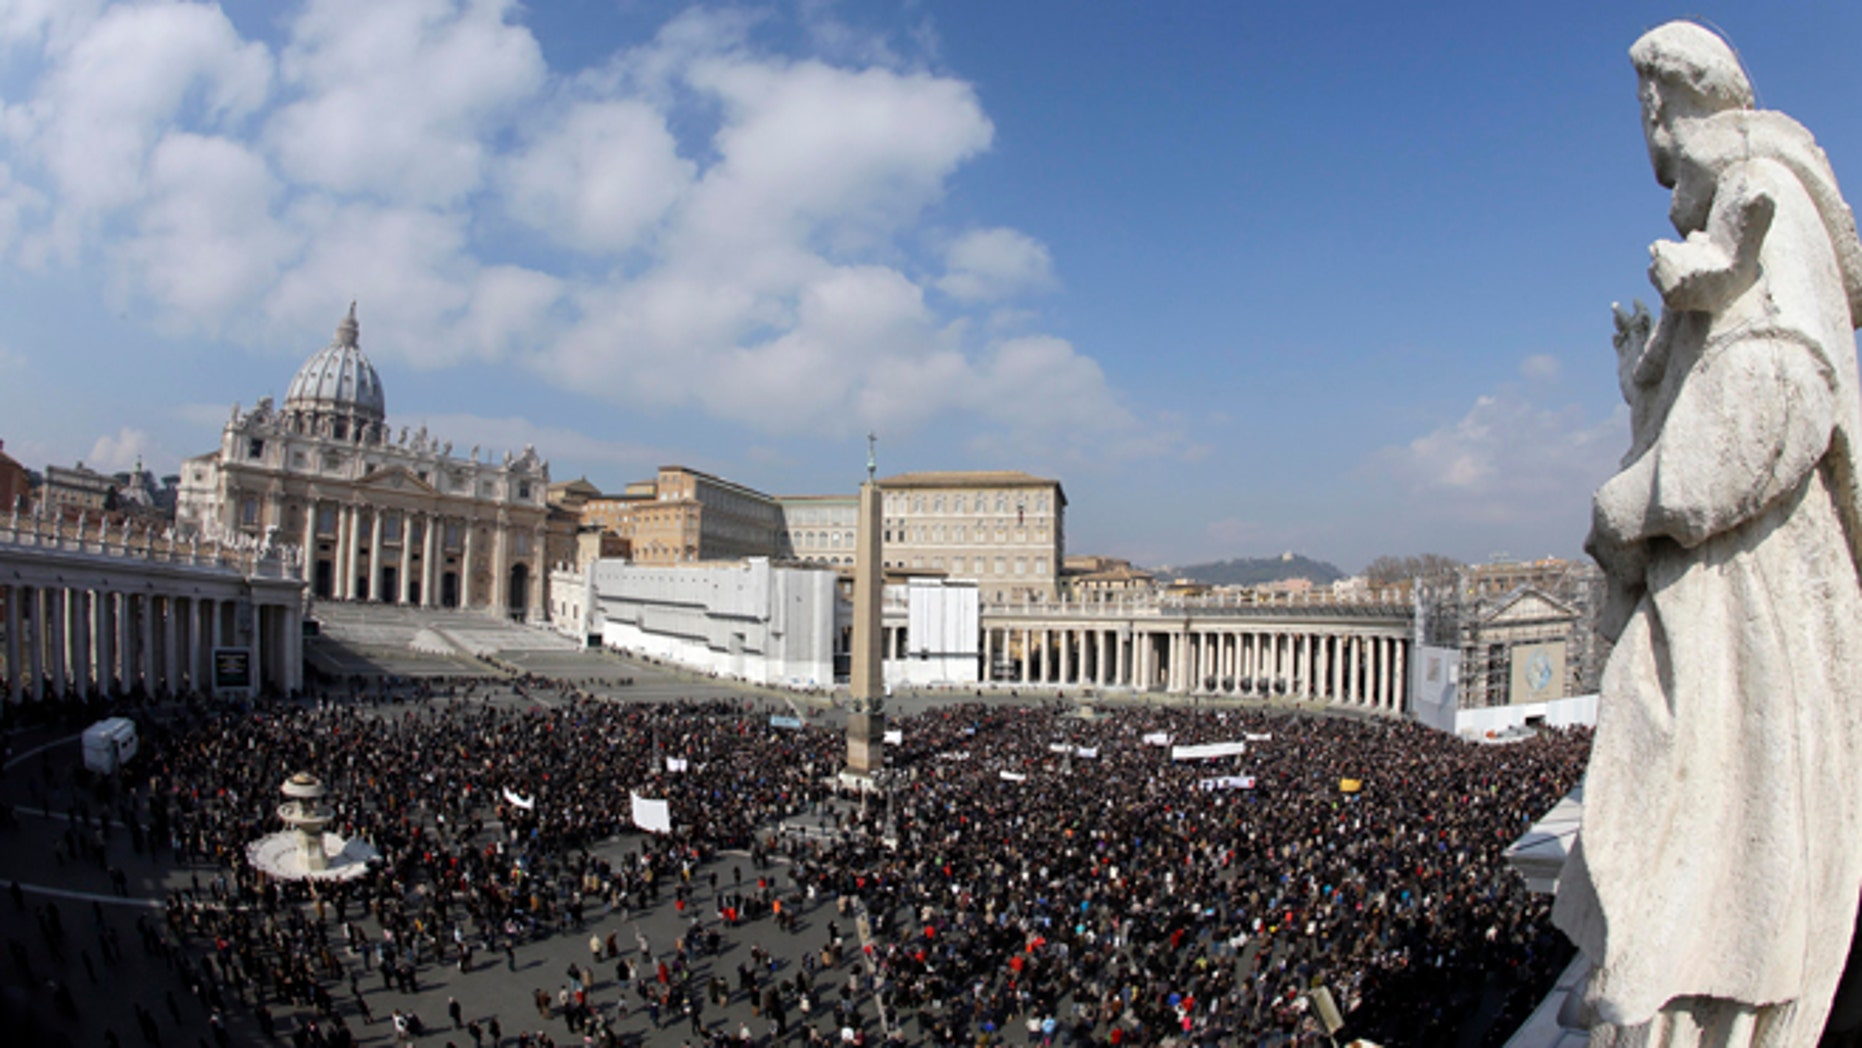 Faithful gather to listen to pope Benedict XVI's Angelus prayer in St. Peter's square at the Vatican, Sunday, Feb. 17, 2013. Pope Benedict XVI blessed the faithful from his window overlooking St. Peter's Square for the first time since announcing his resignation, cheered by an emotional crowd of tens of thousands of well-wishers from around the world. (AP Photo/Gregorio Borgia)